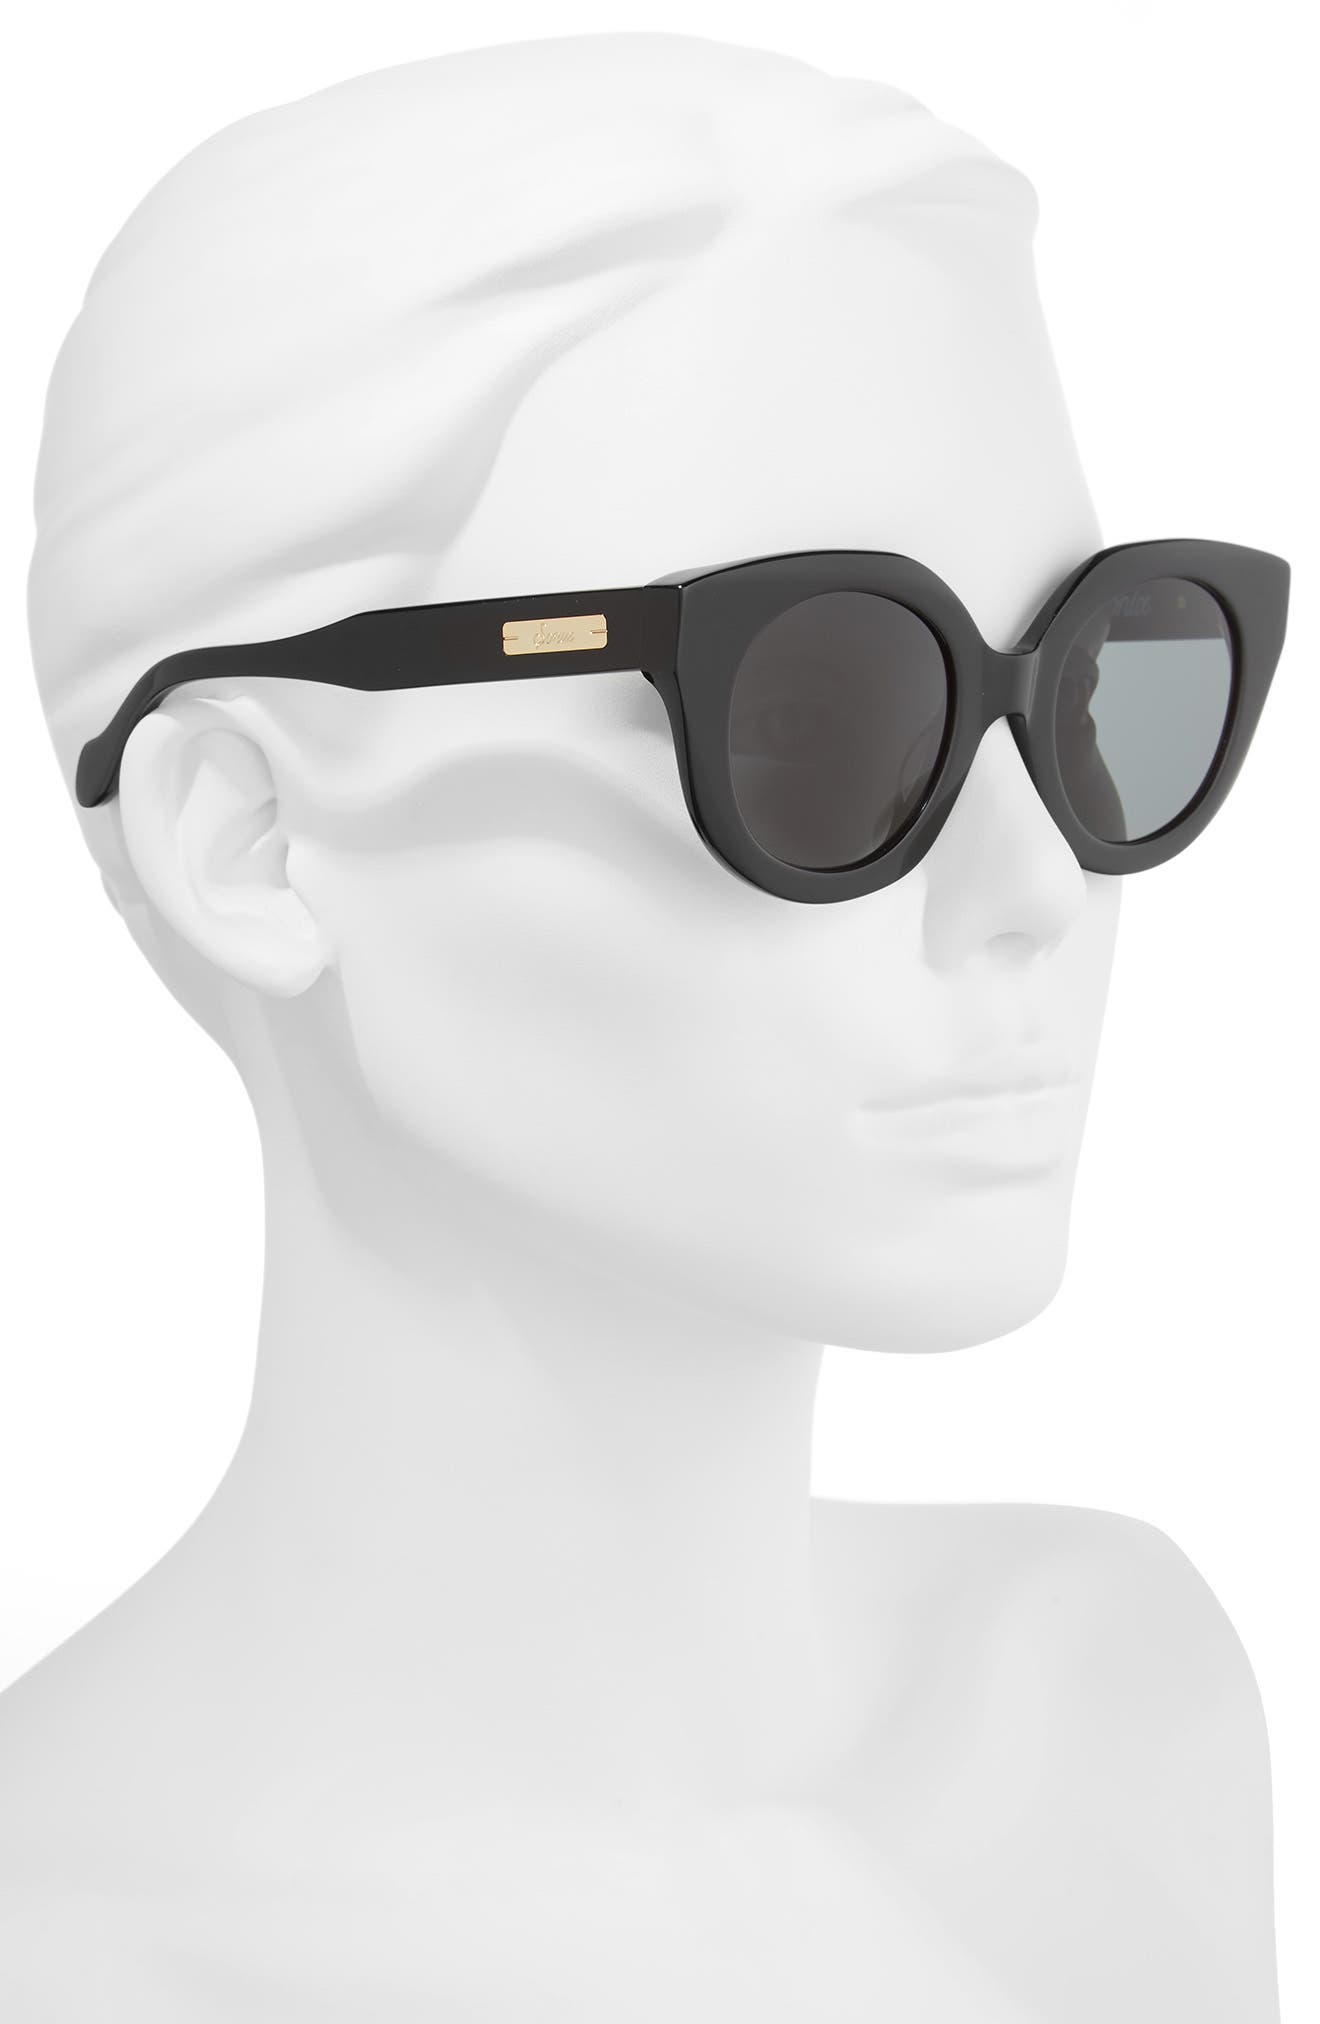 Penny 48mm Cat Eye Sunglasses,                             Alternate thumbnail 2, color,                             001